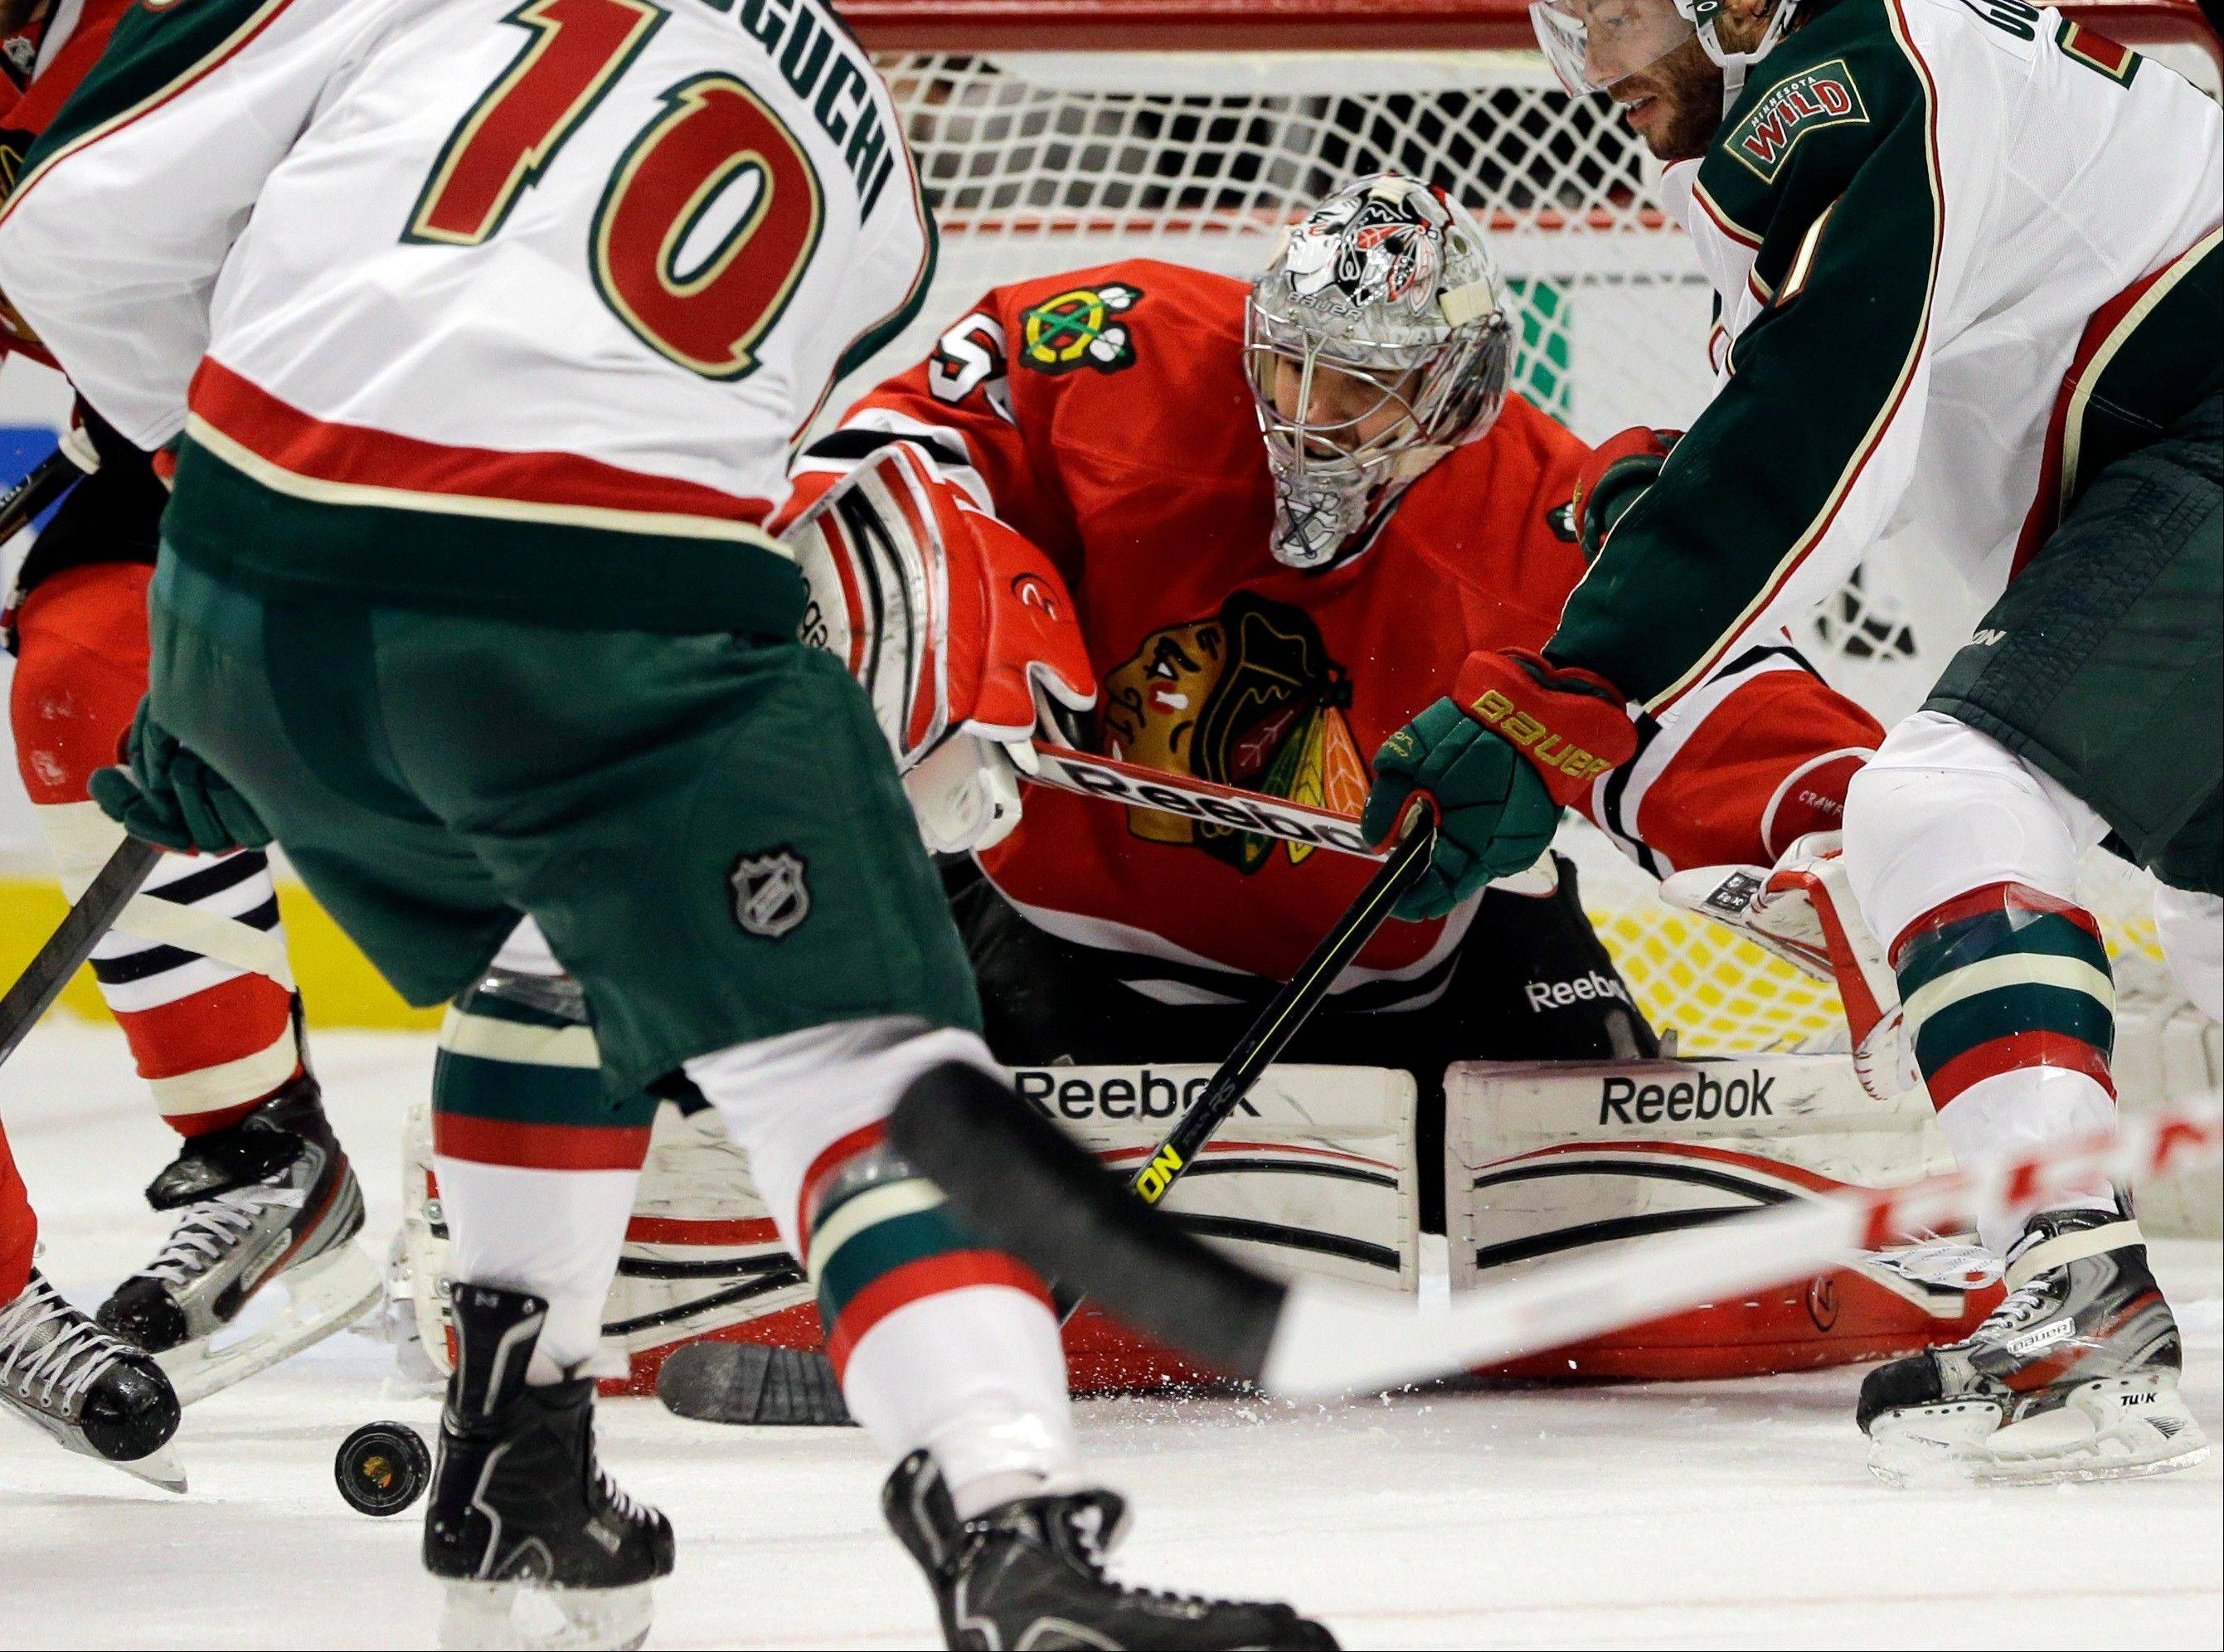 Chicago Blackhawks goalie Corey Crawford (50) blocks a shot by Minnesota Wild's Devin Setoguchi (10) as Matt Cullen (7), right, looks on during the first period of Game 5 of an NHL hockey Stanley Cup first-round playoff series in Chicago, Thursday, May 9, 2013.